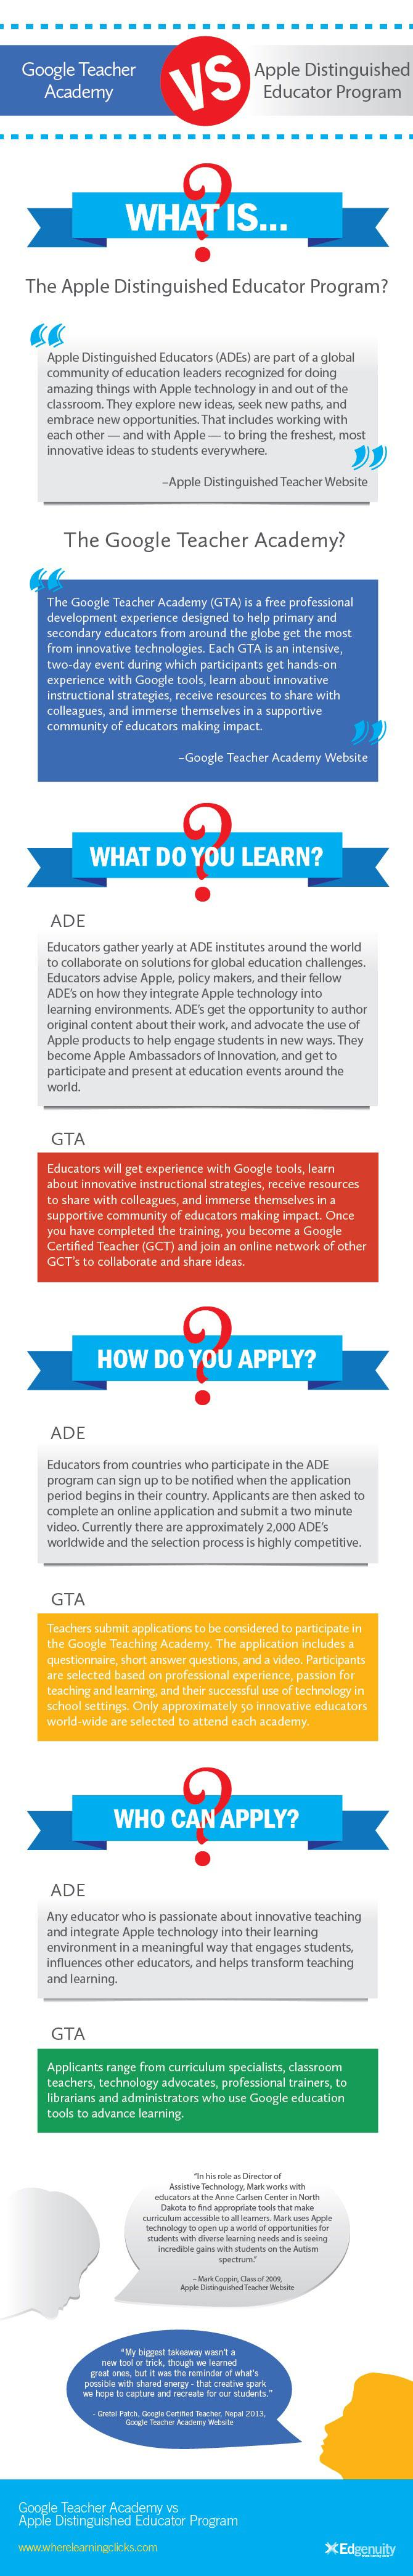 Google-and-Apple-Educator-Programs